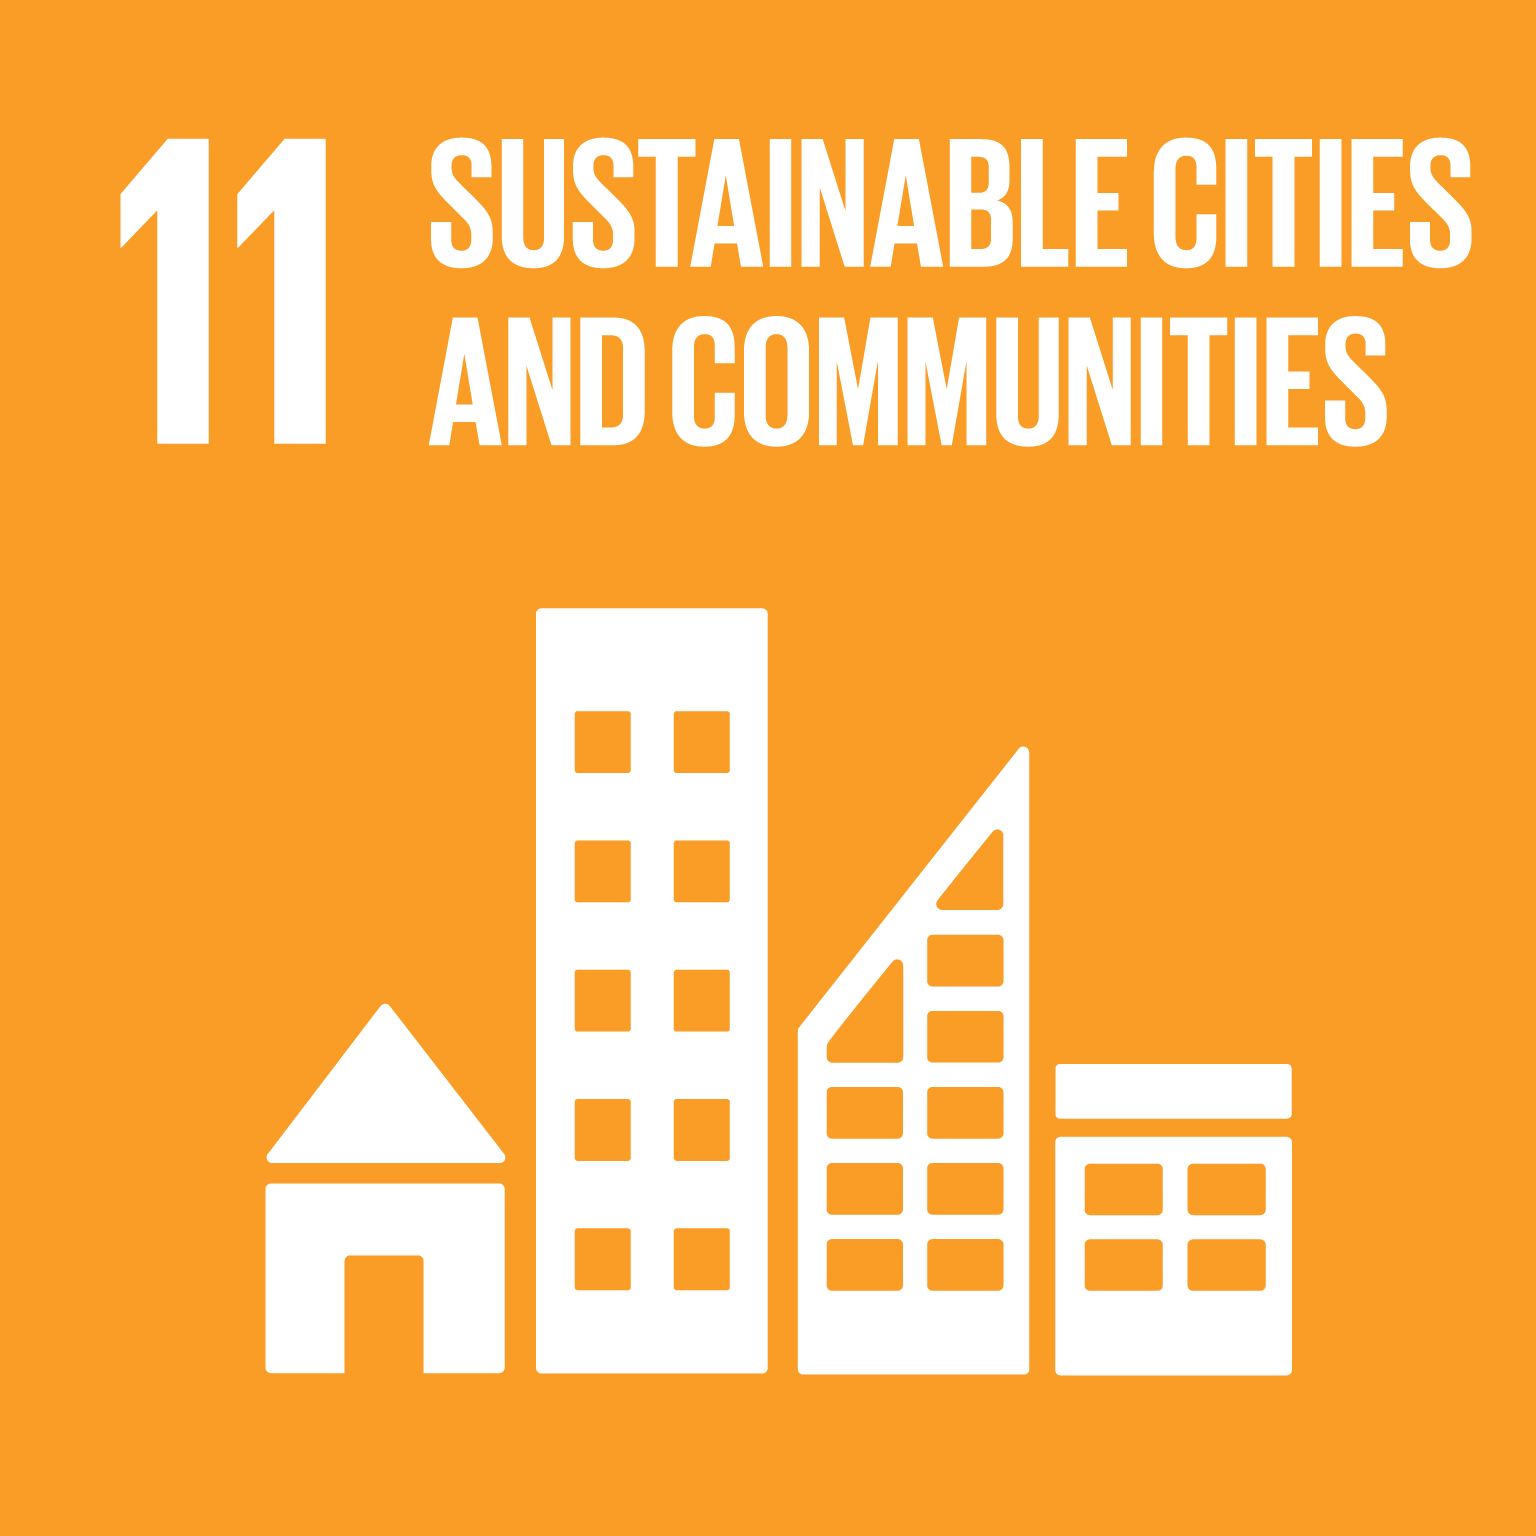 11 Sustainable Cities and Communities SDG